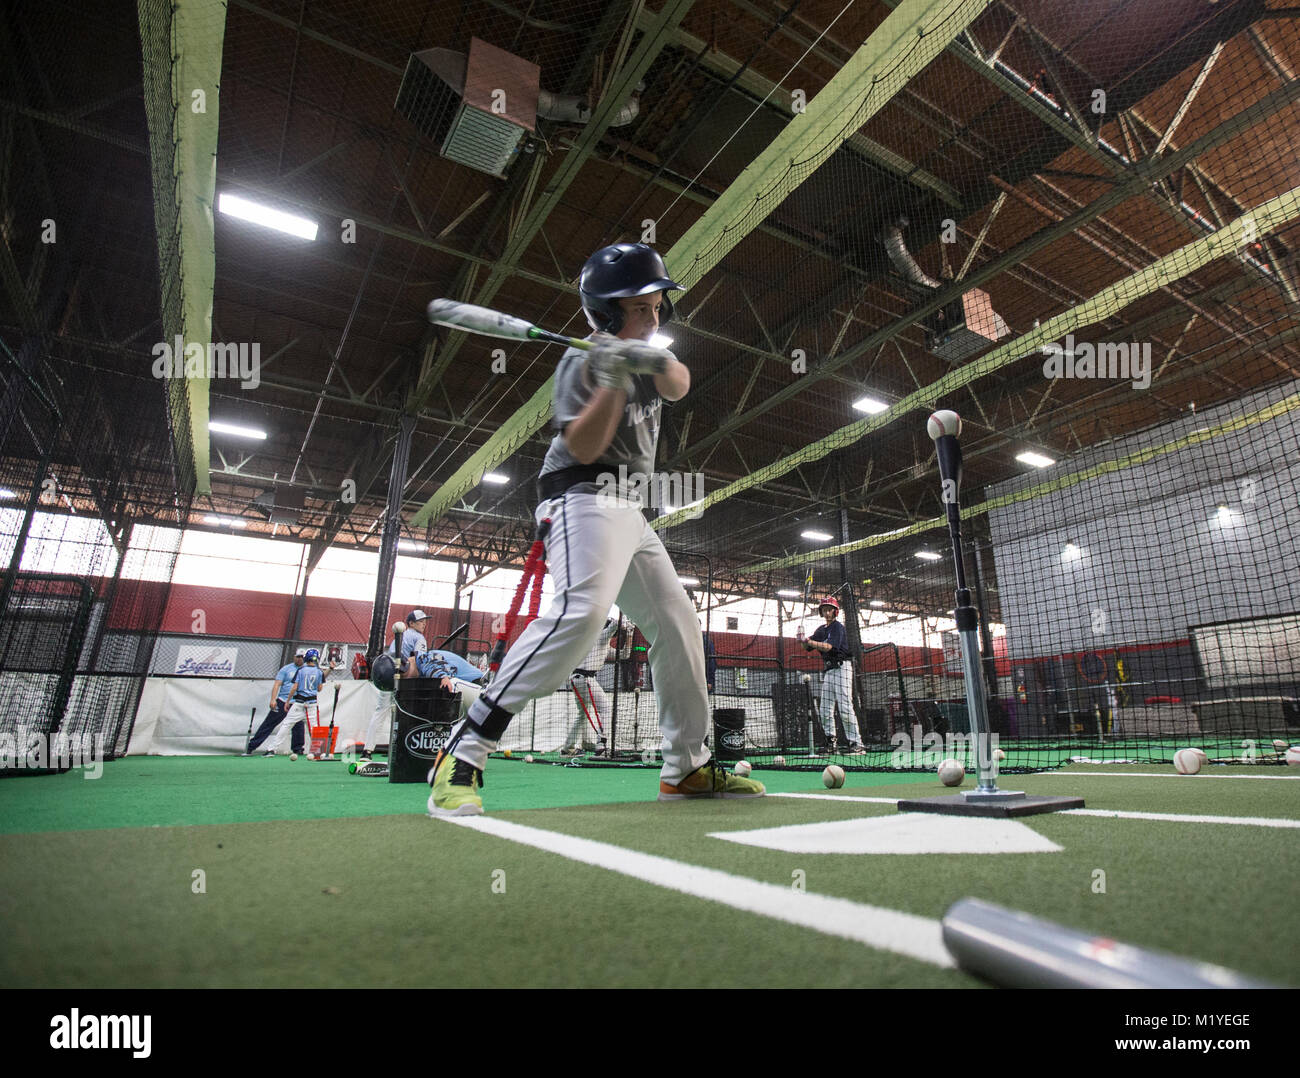 Baseball player practicing hitting at an indoor training facility in New Jersey - Stock Image